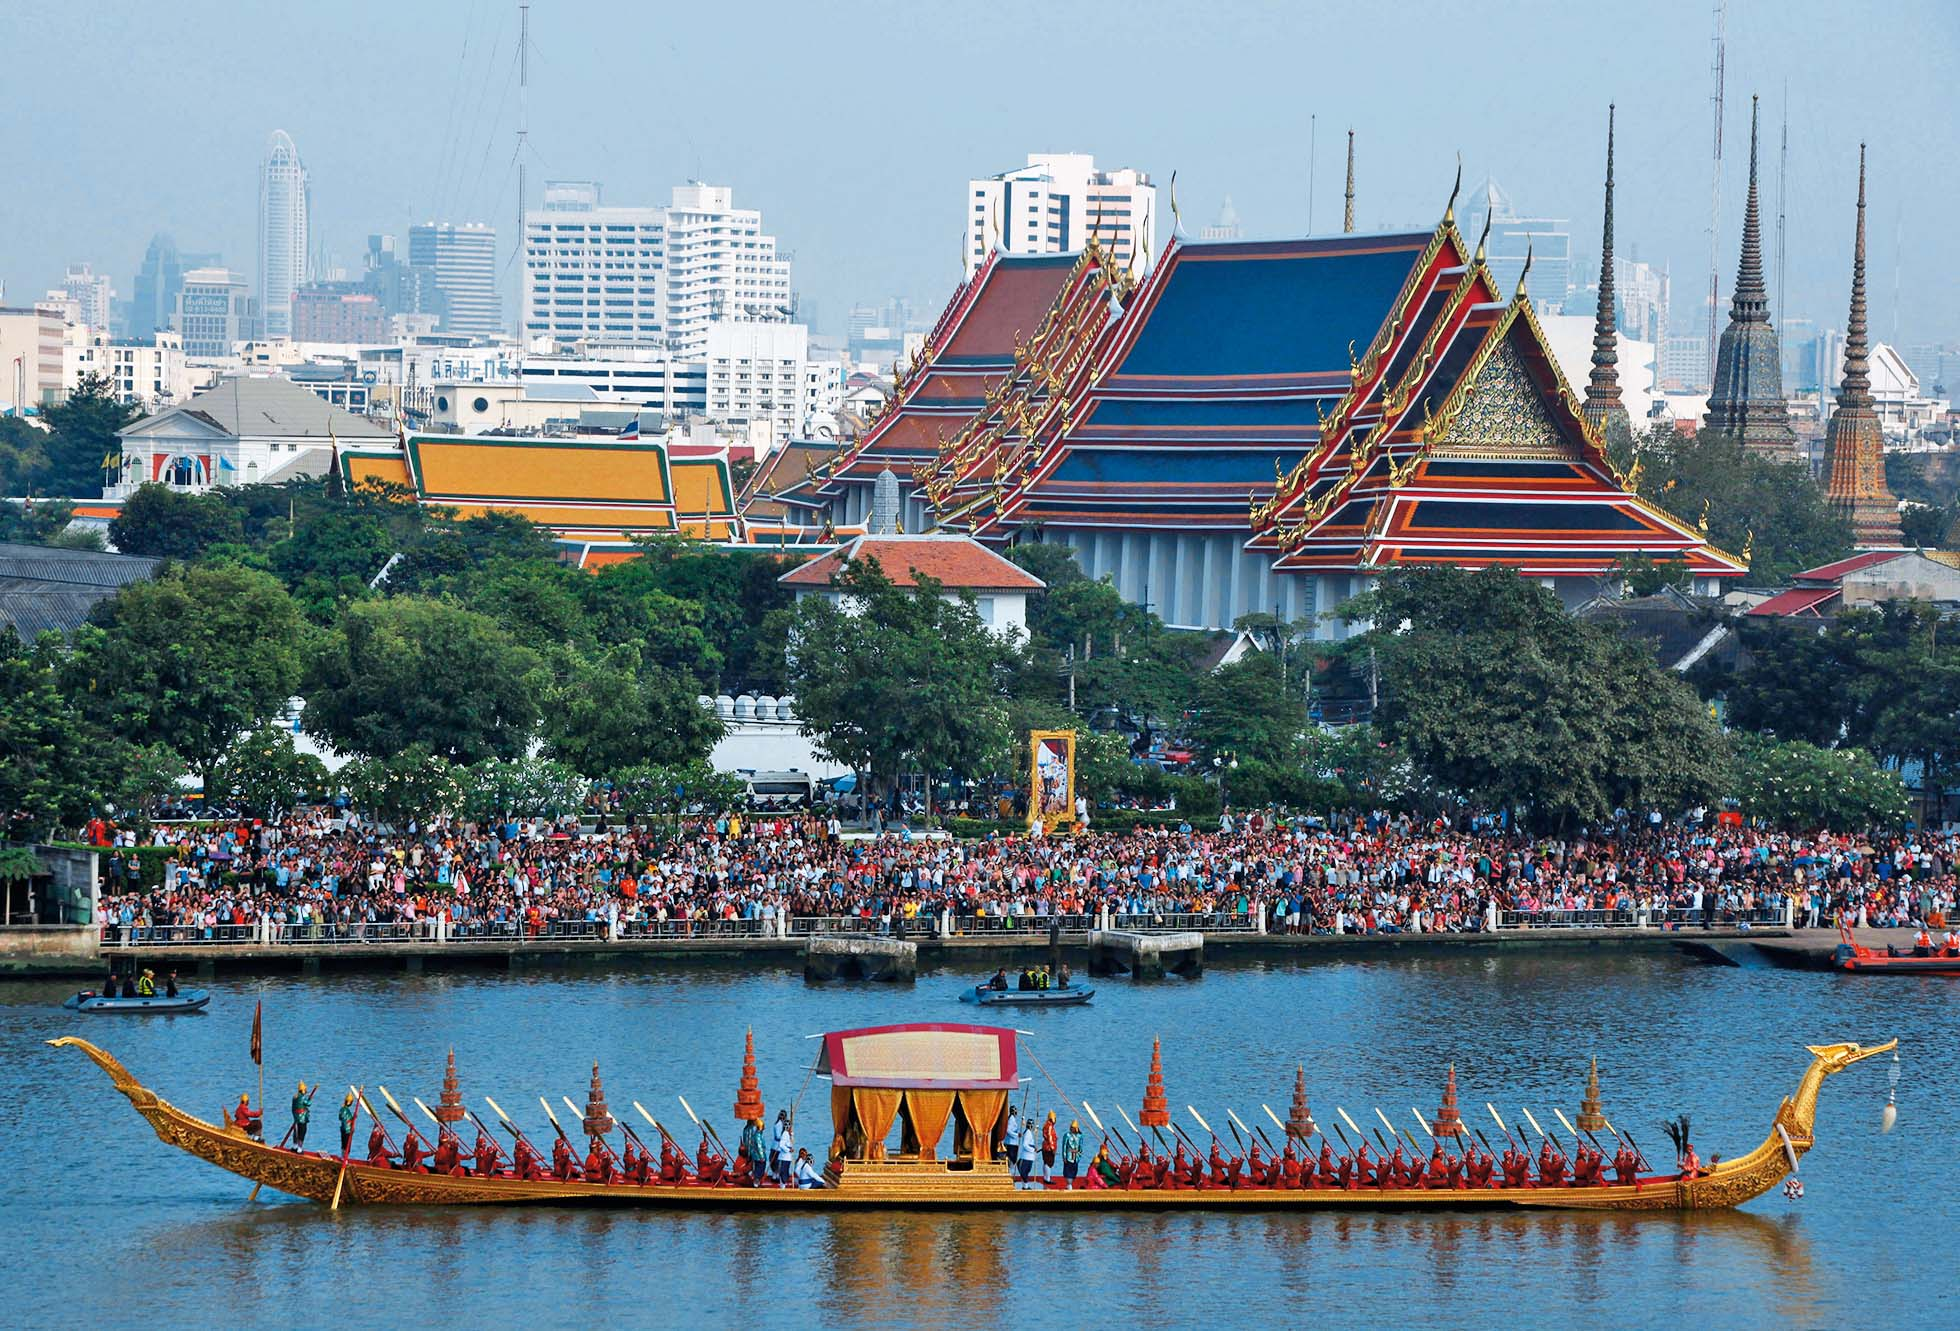 Thai oarsmen row a royal barge during a dress rehearsal for Royal Barge Procession, on the Chao Phraya River in Bangkok November 6, 2012. The Royal Barge Procession, the 700 year-old Thai traditional ceremony, will be held on November 9 to mark the end of Buddhist lent day and to celebrate the 85th Birthday of King Bhumibol.  REUTERS/Chaiwat Subprasom    (THAILAND - Tags: POLITICS SOCIETY) - GM1E8B61GT501